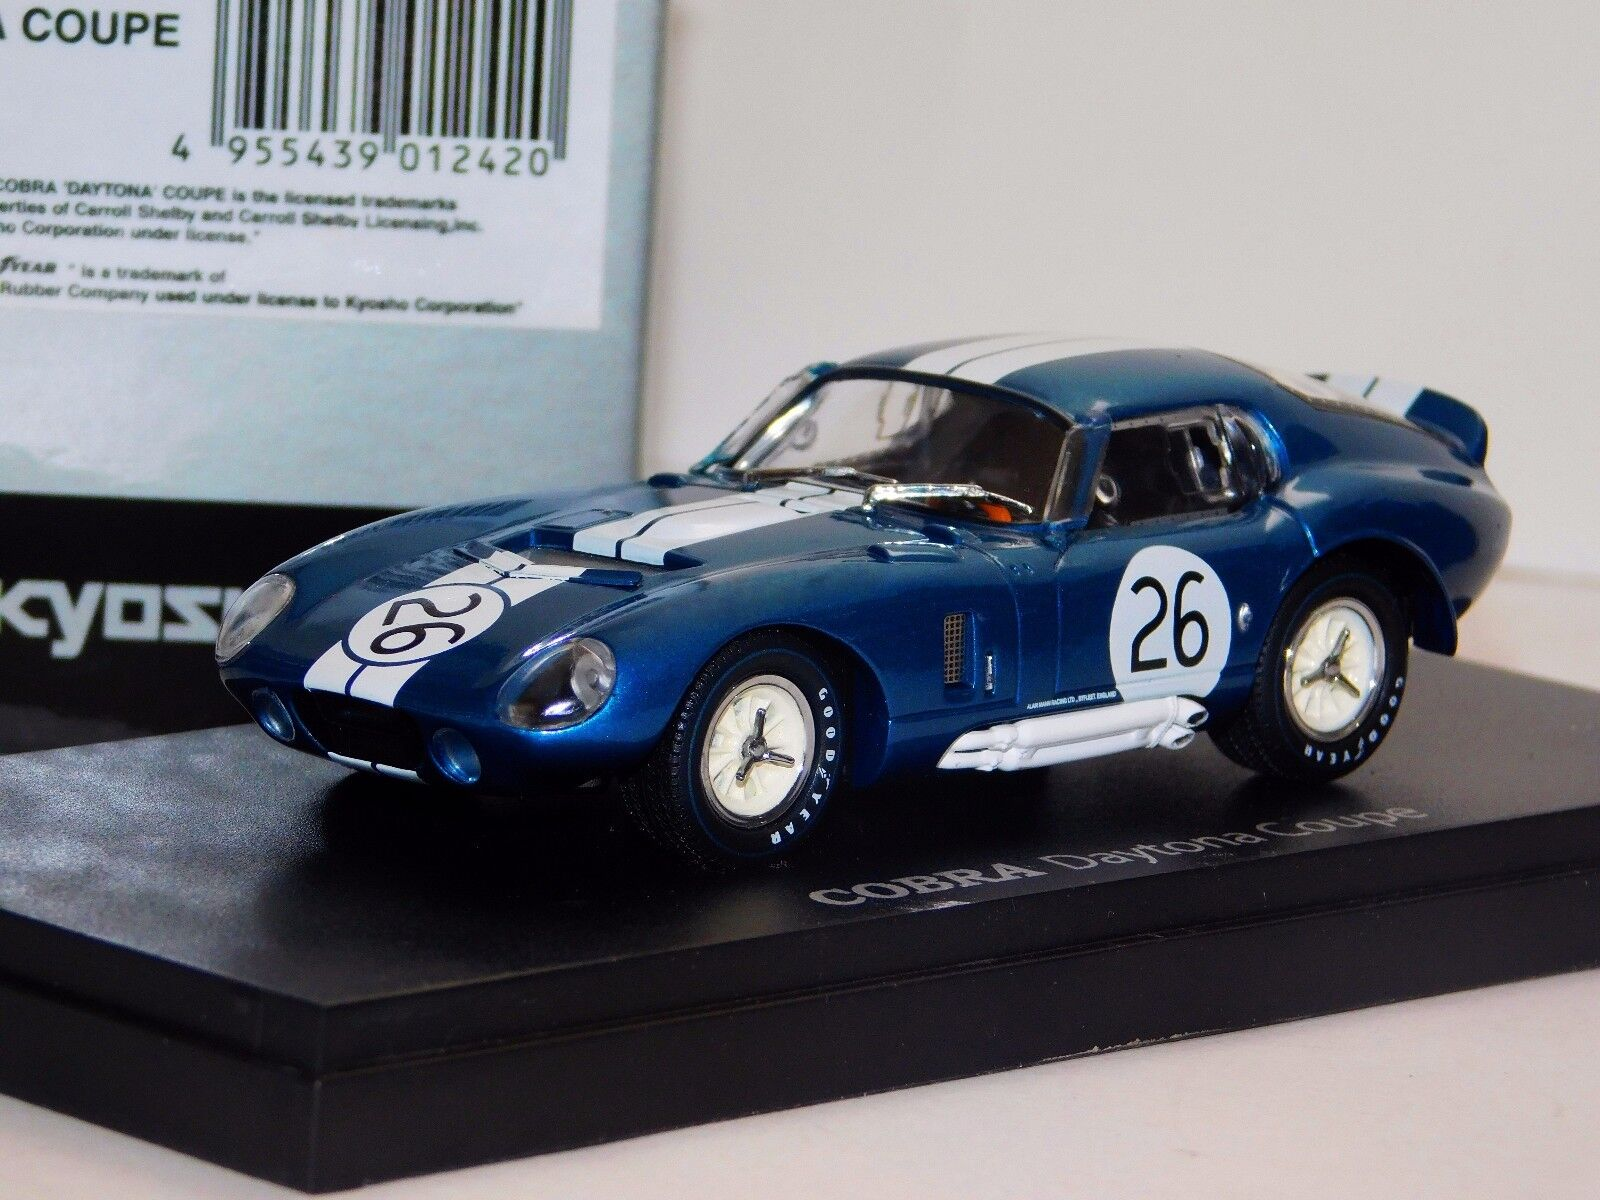 SHELBY COBRA DAYTONA COUPE  26 KYOSHO 03051C 1 43